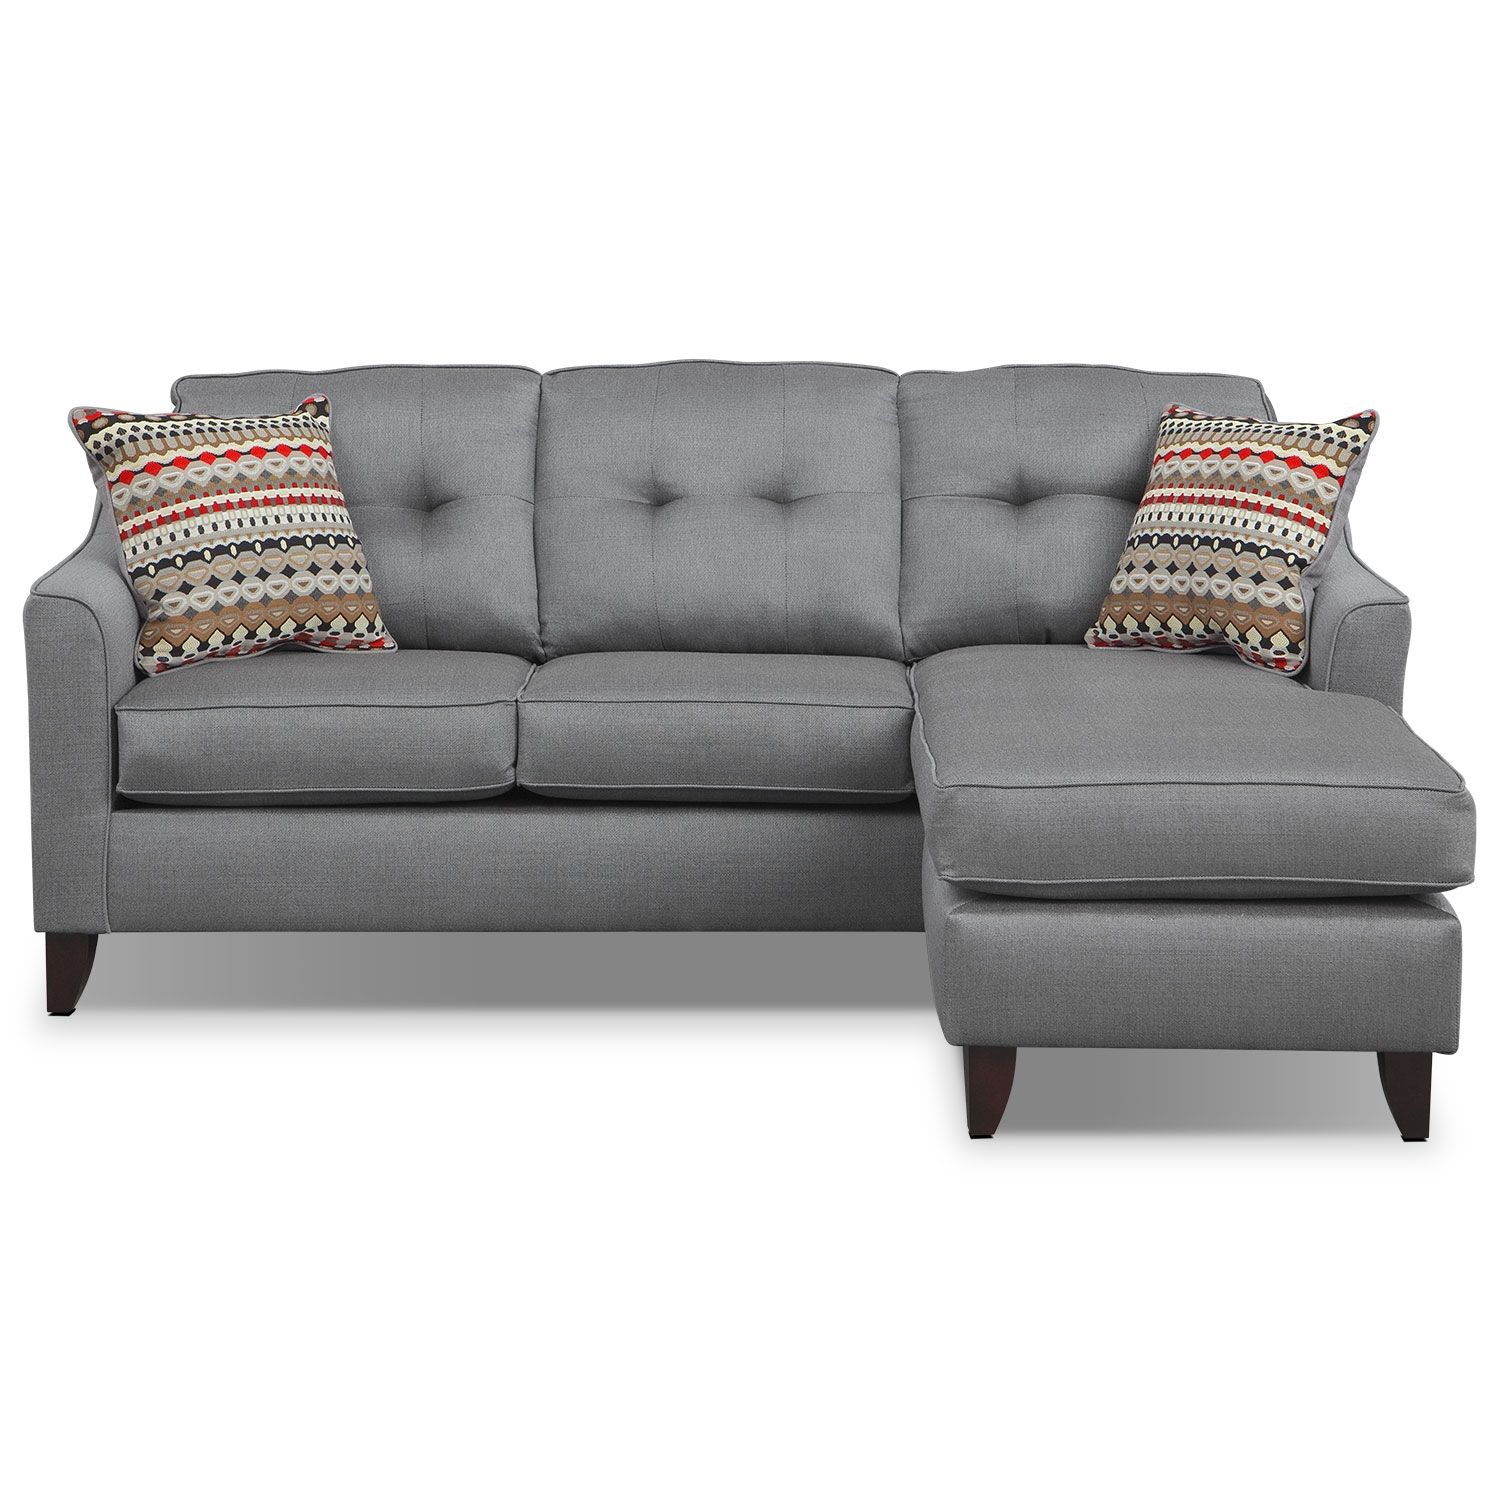 Simply Stylish Sit Back Relax And Sink Into The Comfortable Marco Chaise Sofa Upholstered With Gorgeous Gray Polyester To Preserve Colo Couch With Chaise Chaise Sofa Grey Chaise Sofa